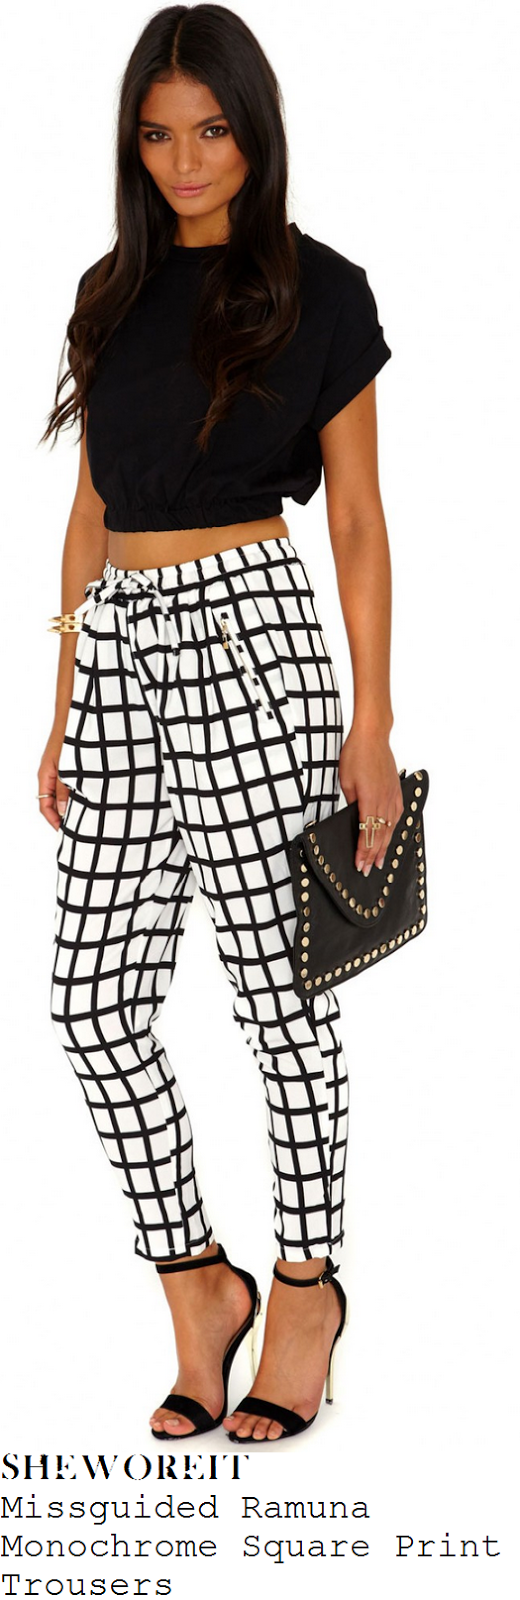 perrie-edwards-black-and-white-monochrome-square-check-print-trousers-children-in-need